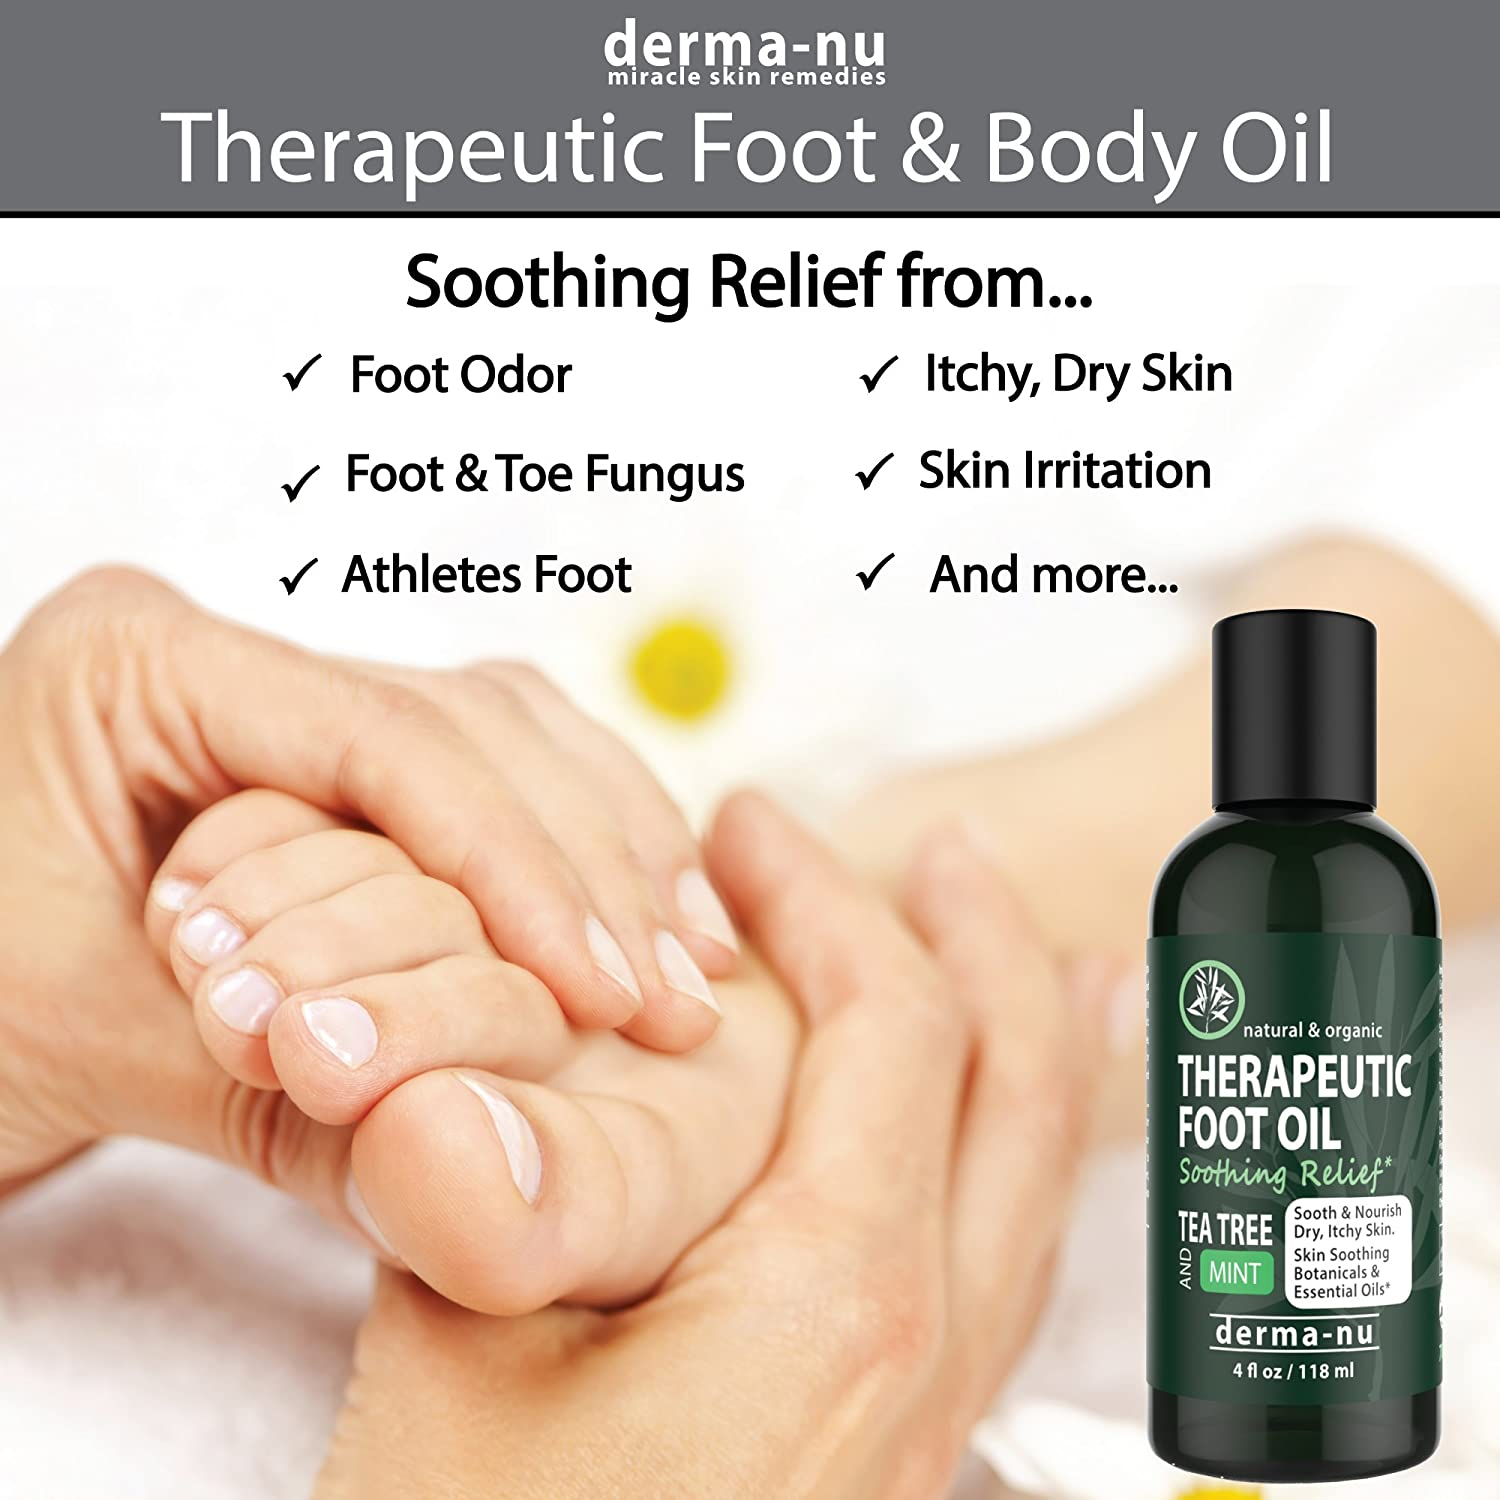 Amazon BEST THERAPEUTIC FOOT OIL Control toe and foot